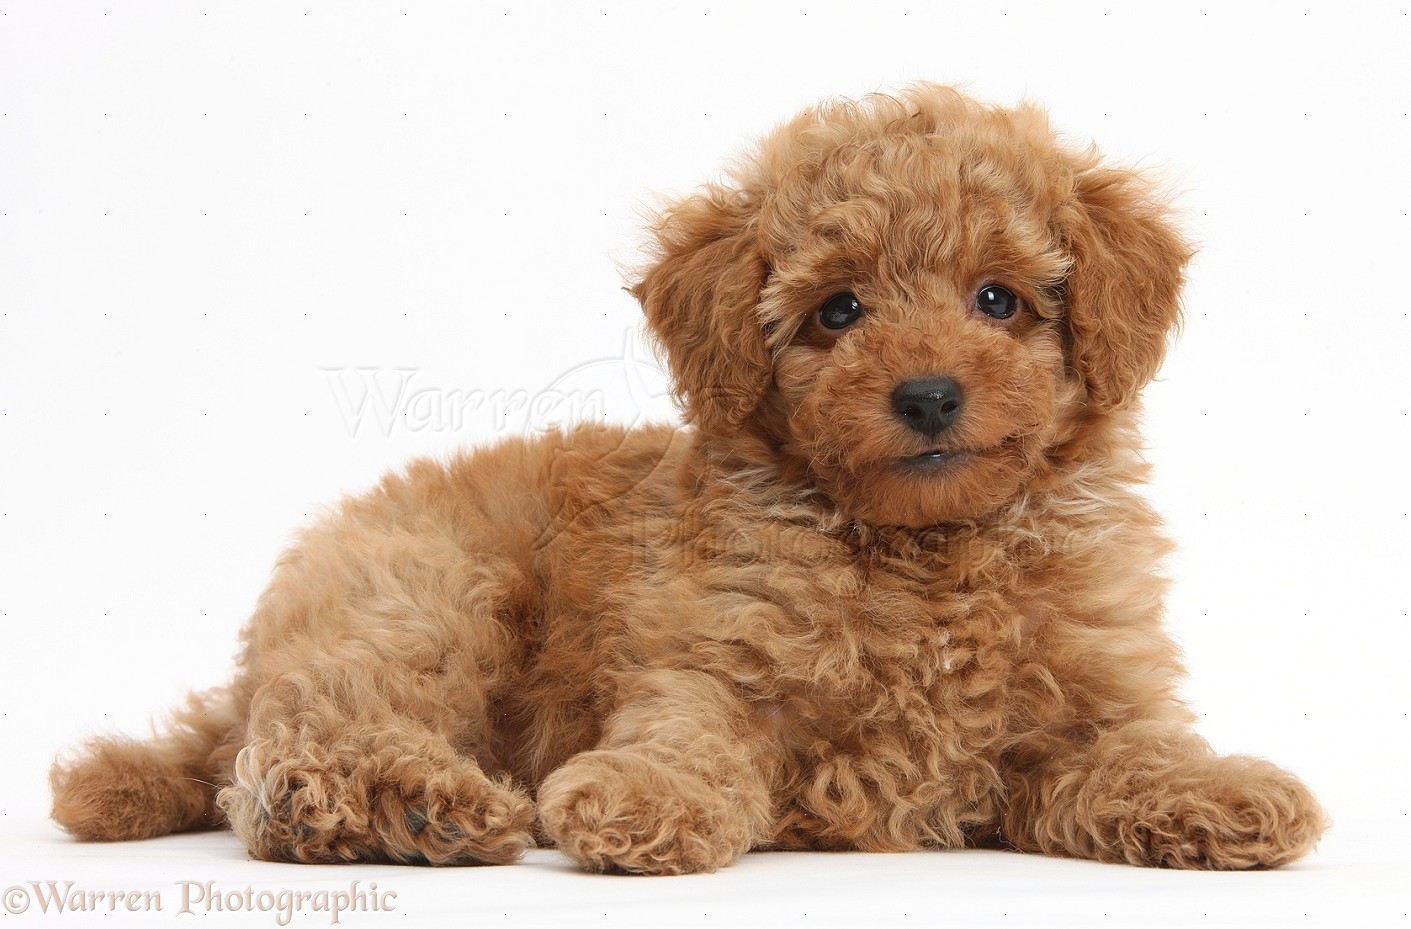 Dog Cute red Toy Poodle puppy photo   WP38746 1411x929